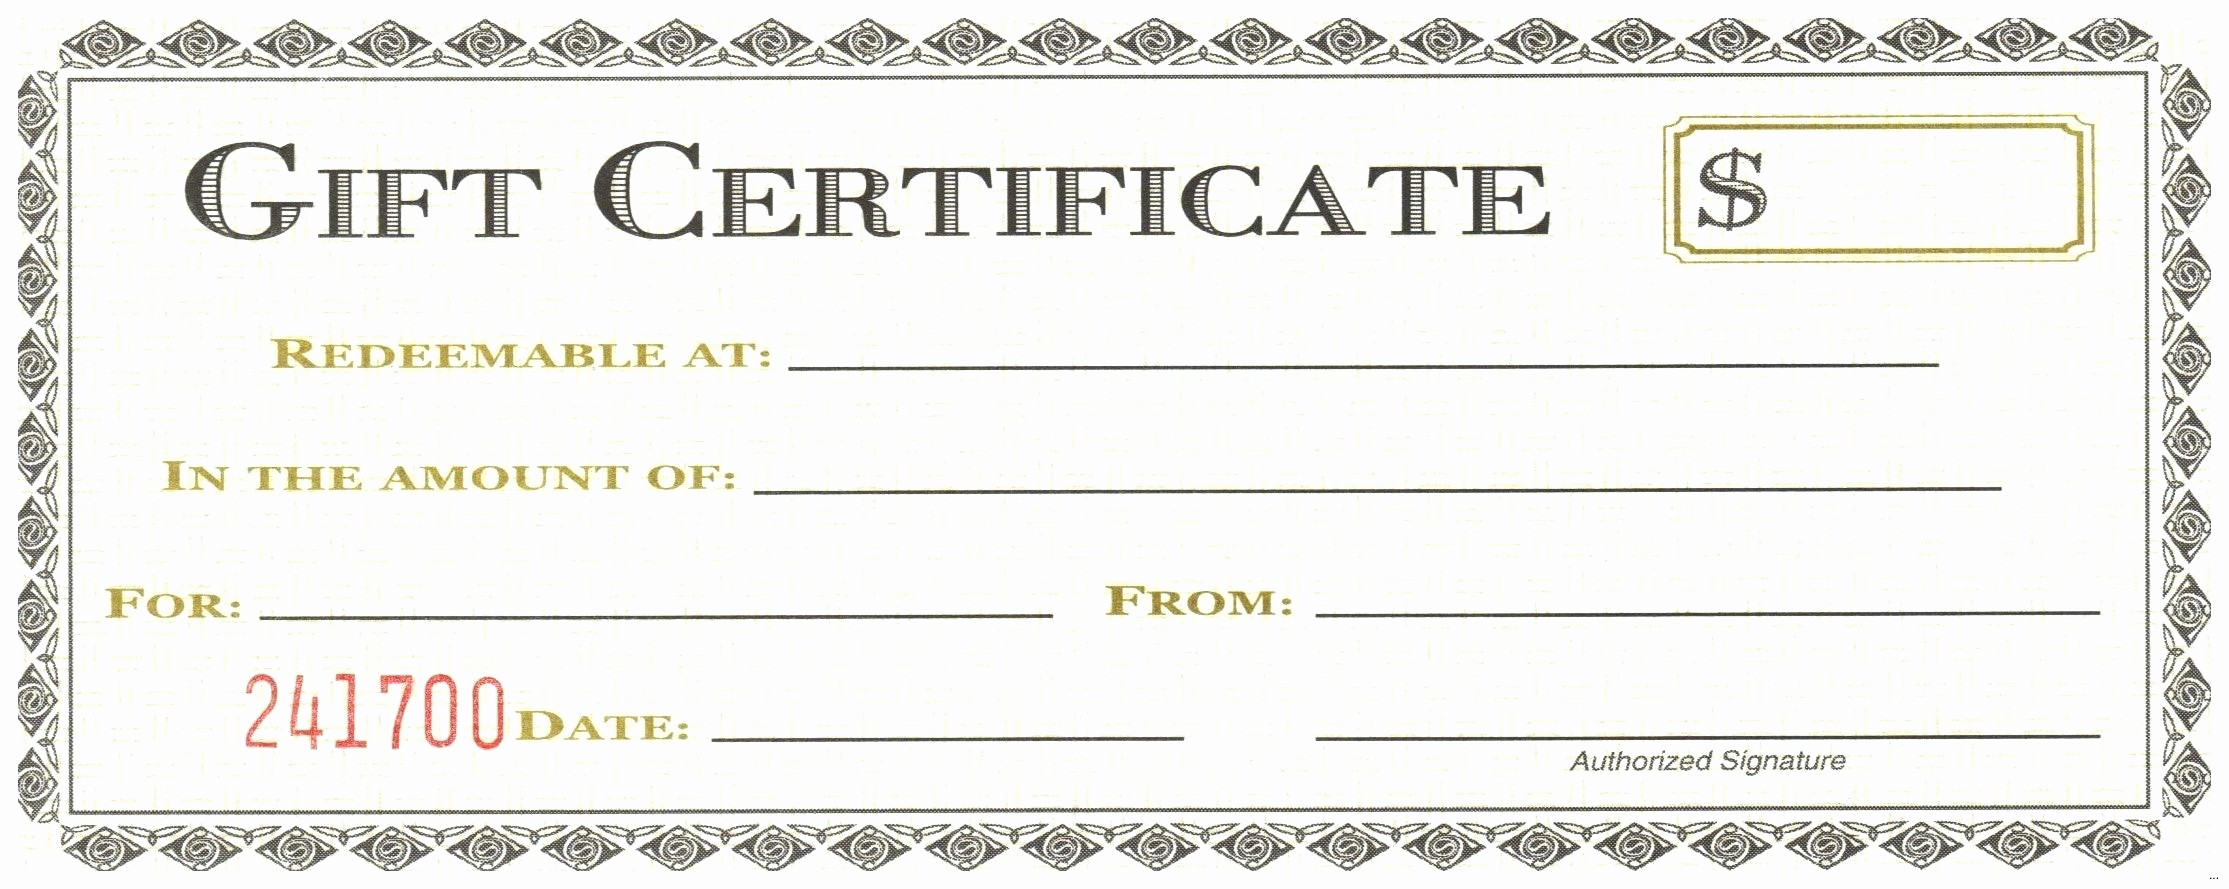 Certificate Templates for Microsoft Word New Template Microsoft Fice Gift Certificate Template